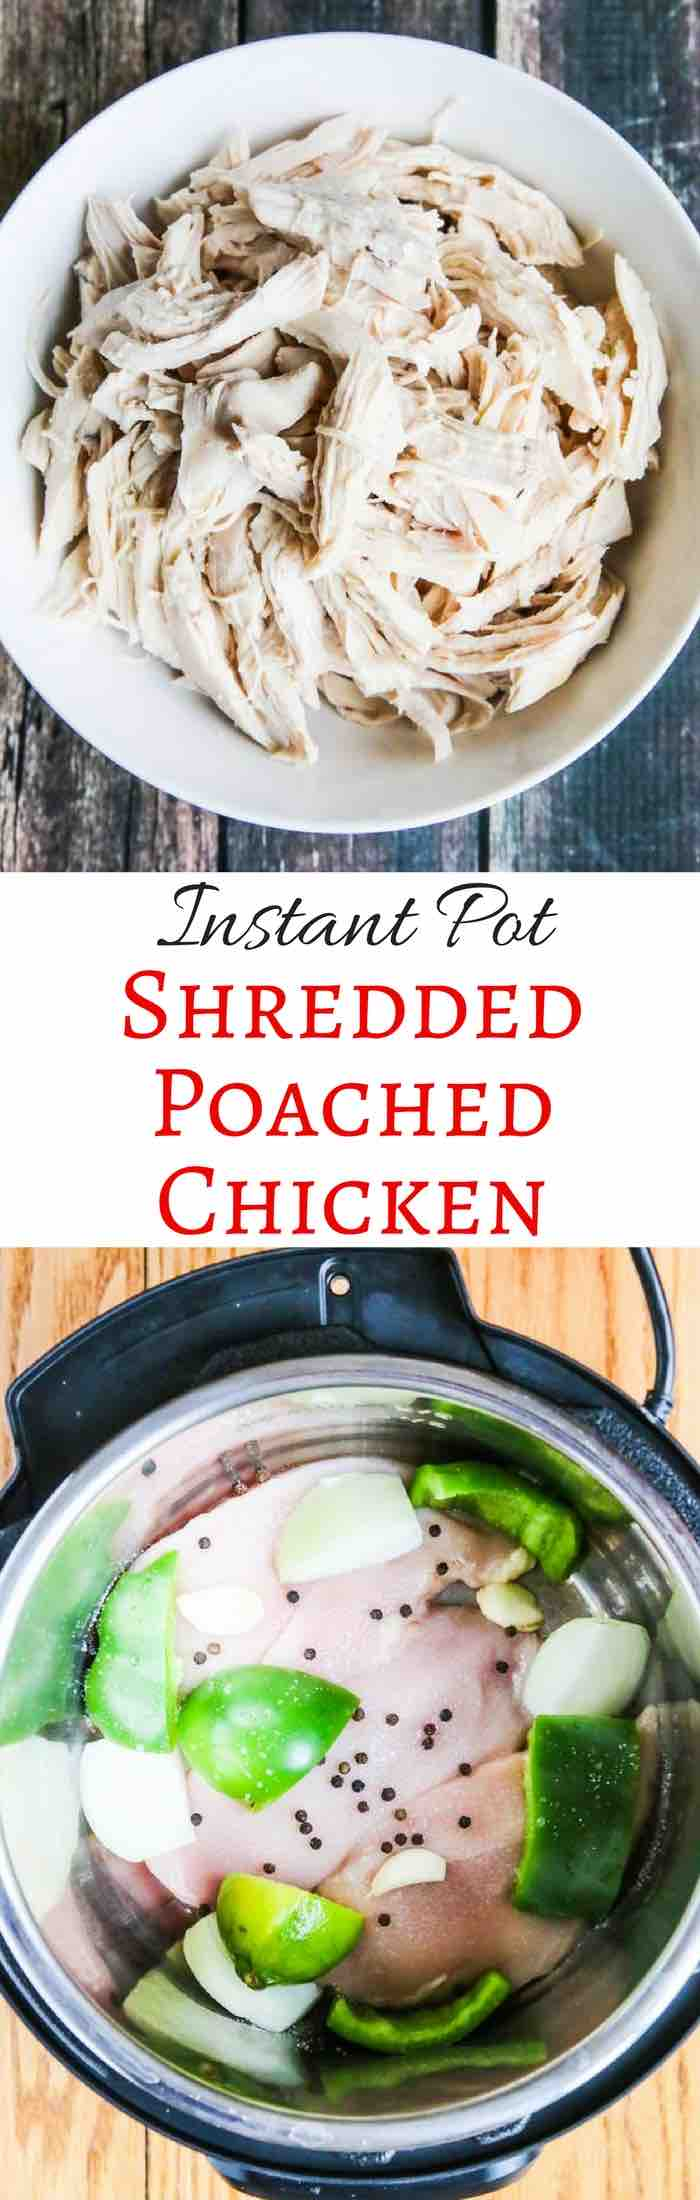 Instant Pot Shredded Poached Chicken - pressure cooking takes 6 minutes to cook - use in any dish that calls for cooked chicken ~ chicken chili, chicken enchiladas, tacos, quesadillas, pasta dishes